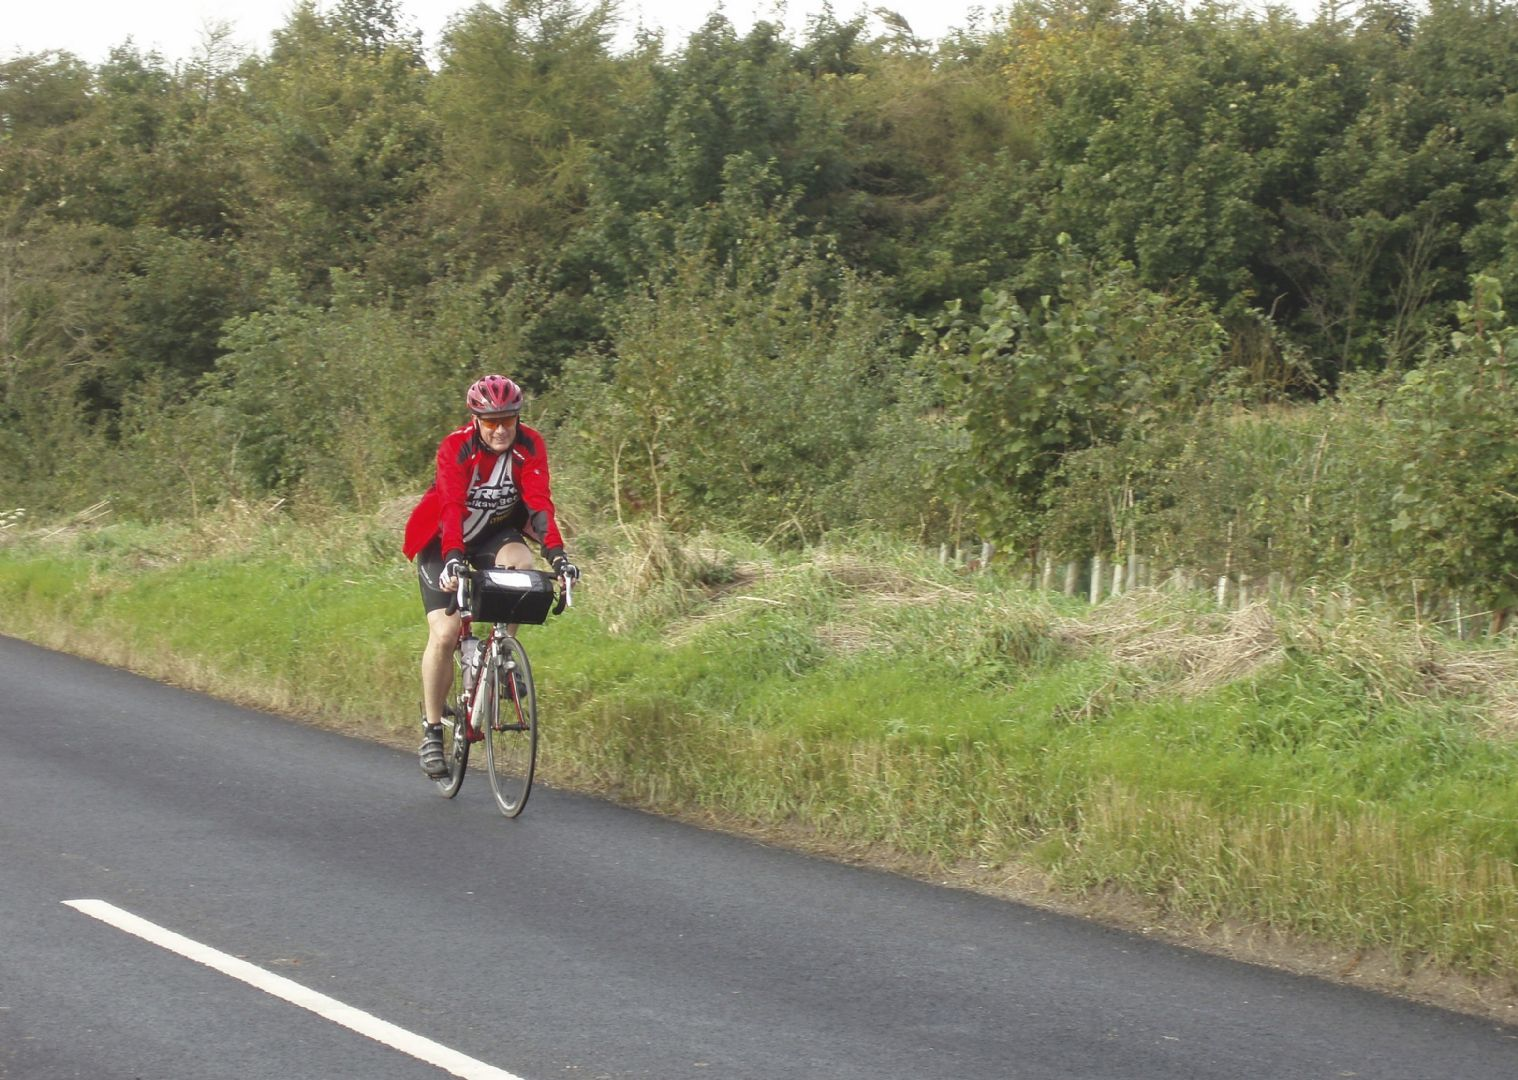 _Staff.290.7649.jpg - UK - C2C - Coast to Coast 2 Days Cycling - Self-Guided Road Cycling Holiday - Road Cycling